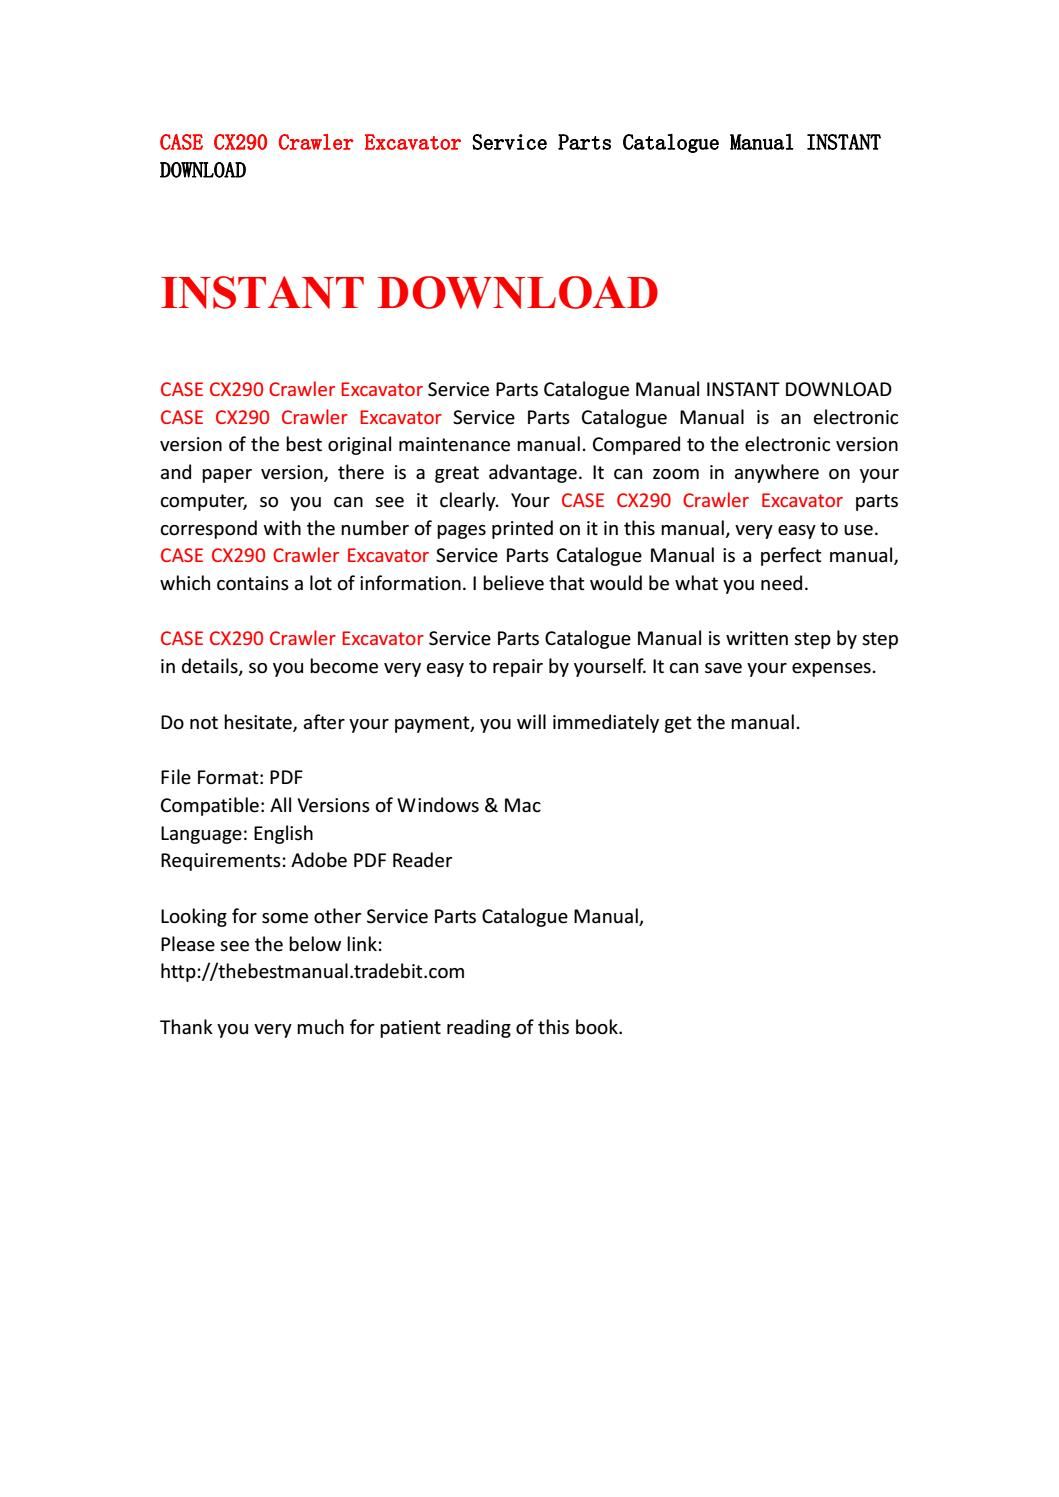 Case cx290 crawler excavator service parts catalogue manual instant  download by kjjsemfmse - issuu